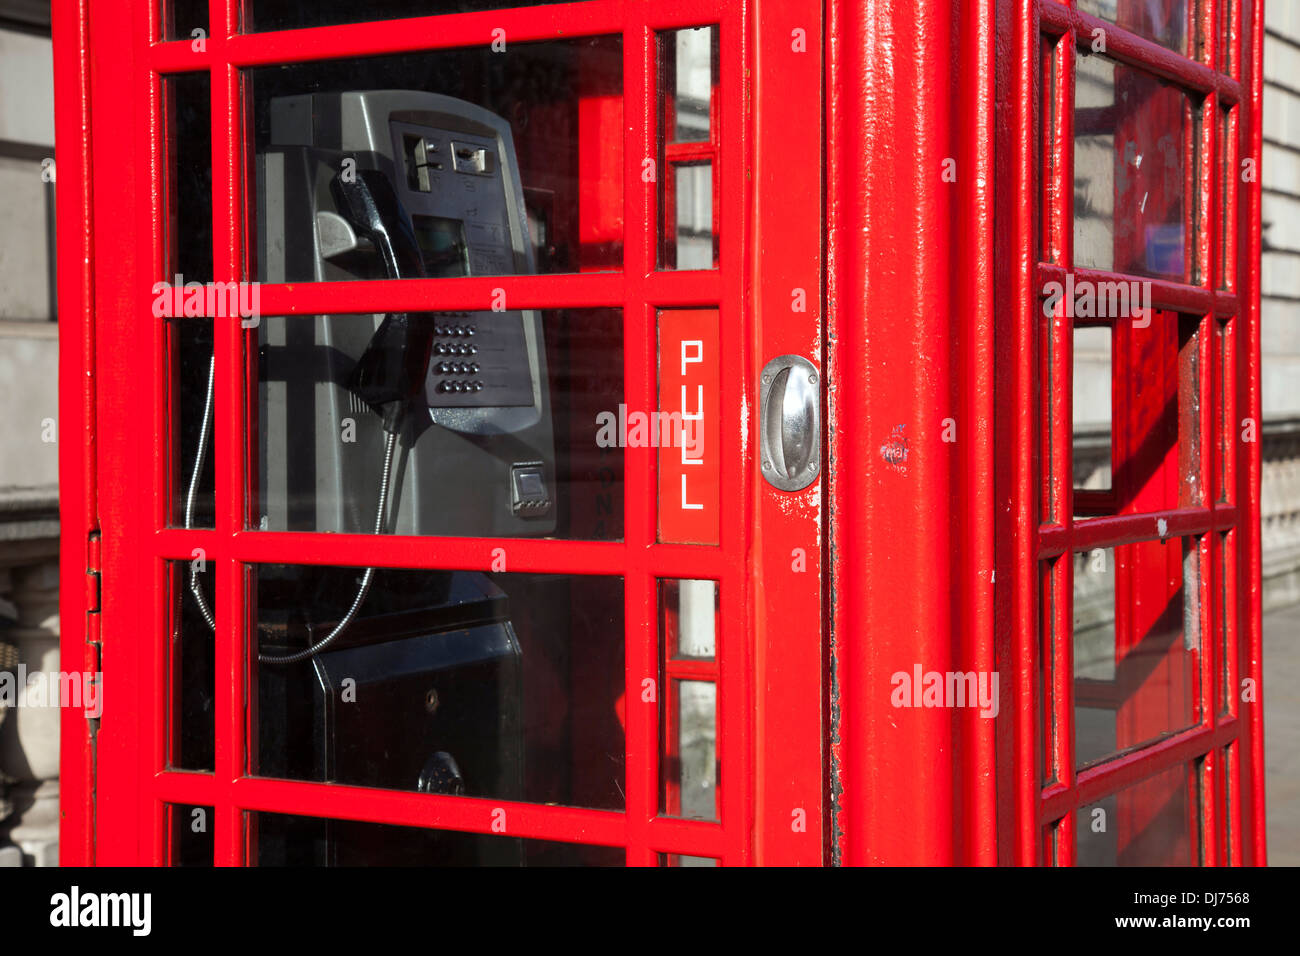 A red telephone box with pay phone in the U.K. - Stock Image